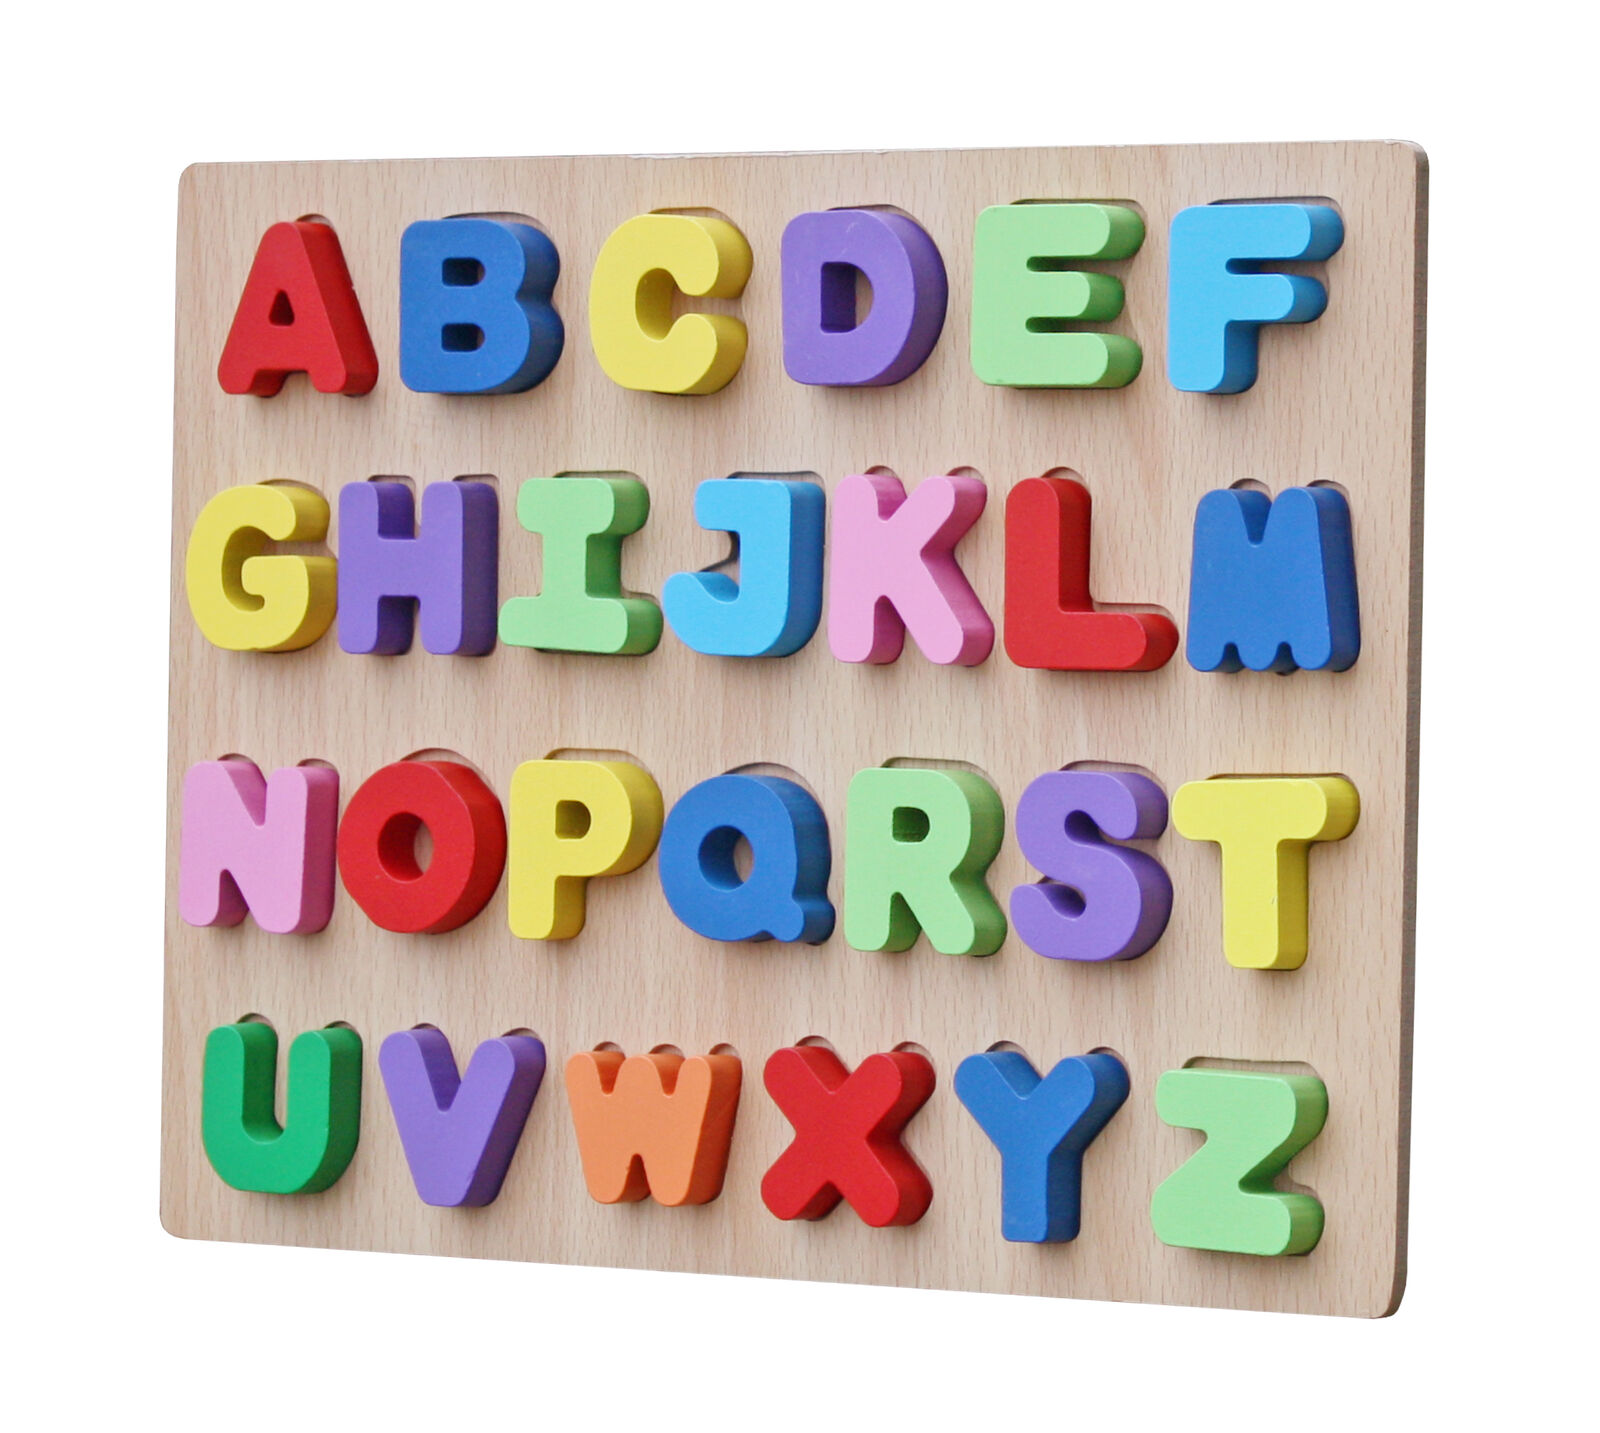 Timy Wooden Alphabet Puzzle Board Kids Learning Toy Develops Motor